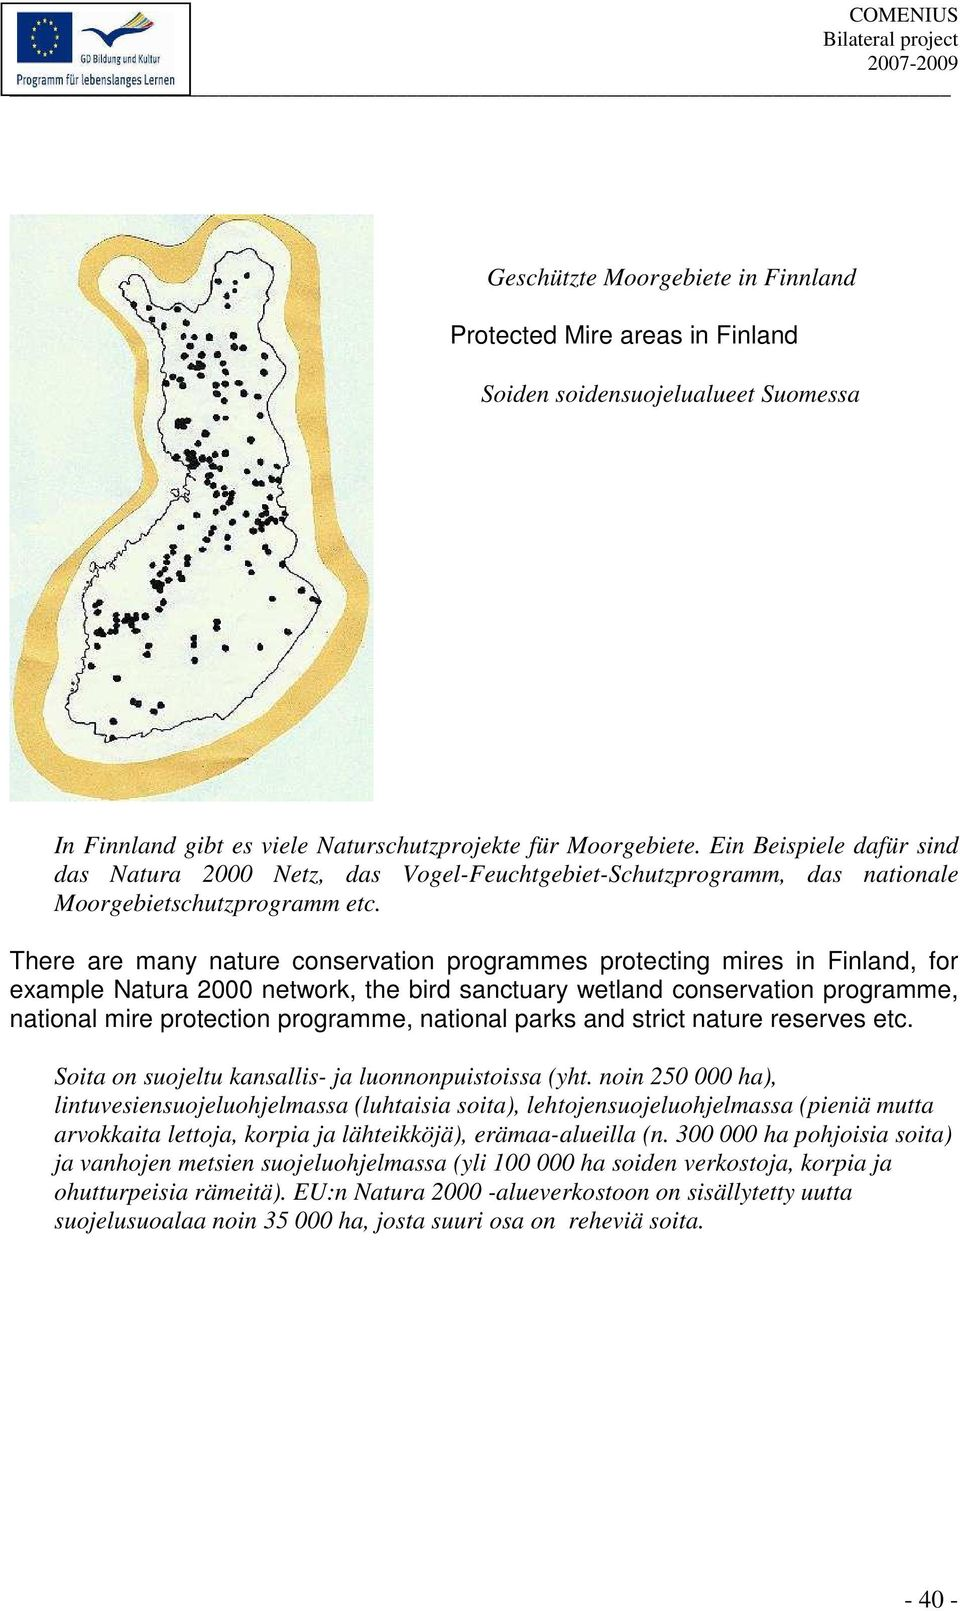 There are many nature conservation programmes protecting mires in Finland, for example Natura 2000 network, the bird sanctuary wetland conservation programme, national mire protection programme,